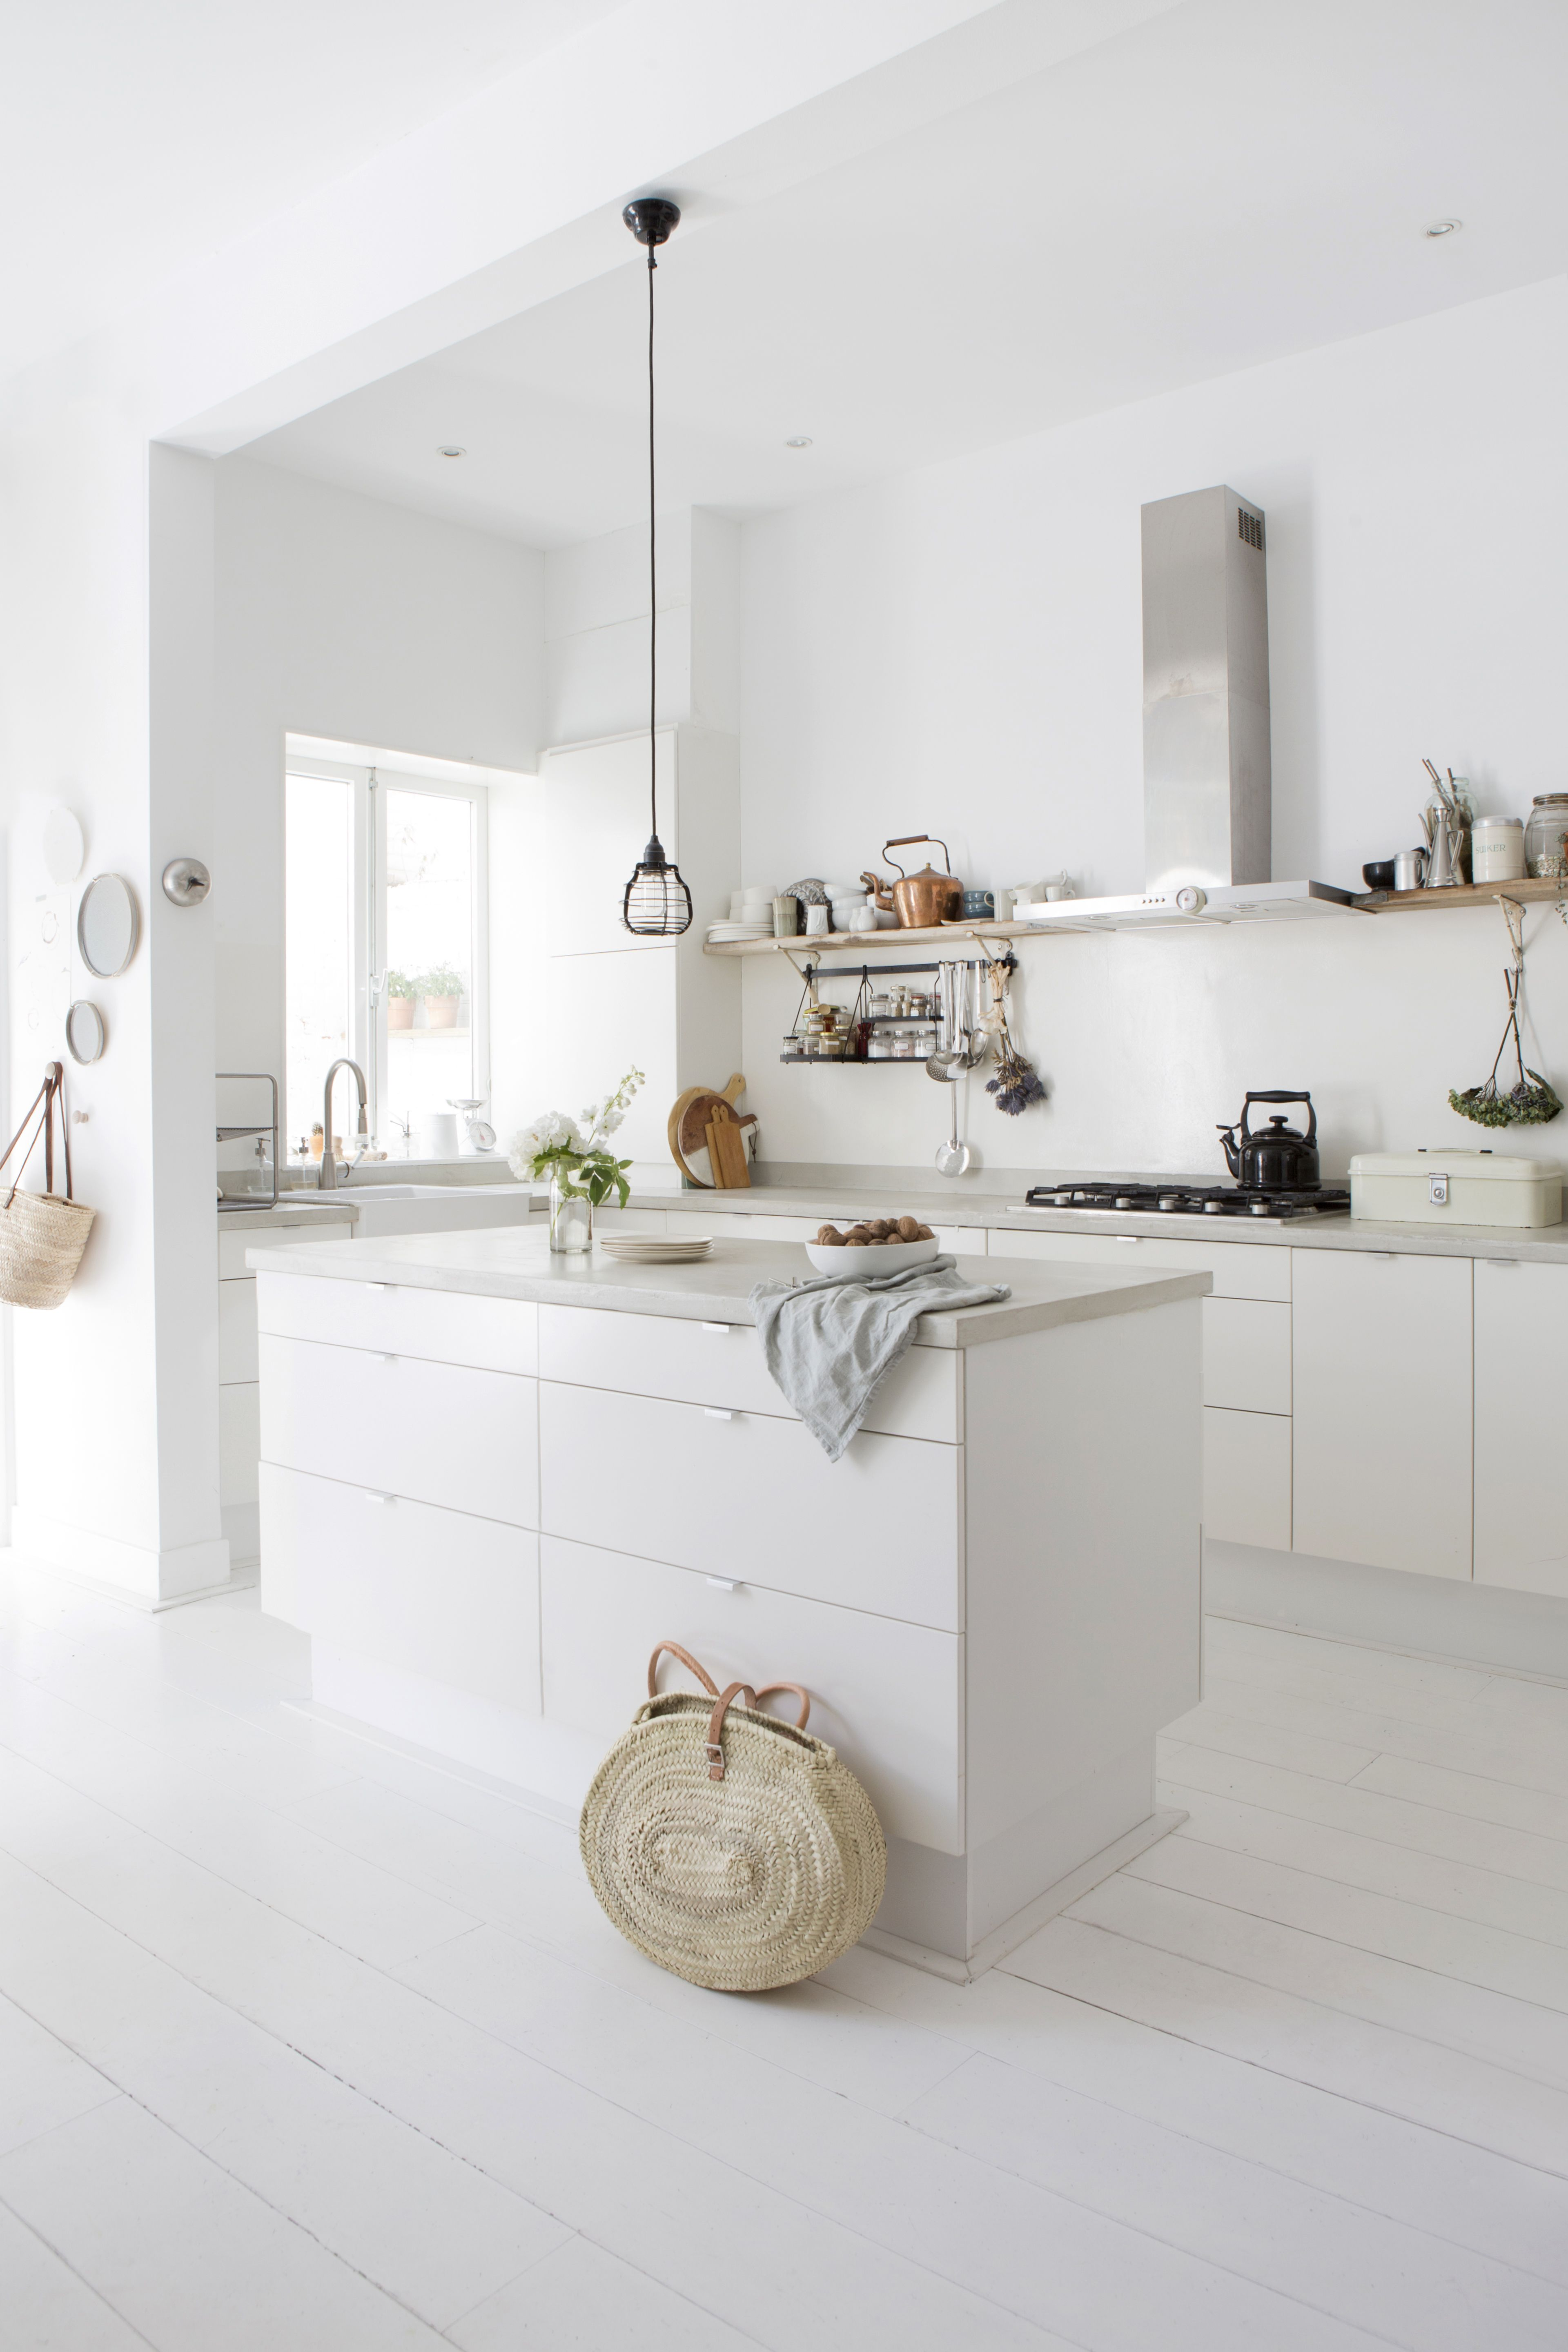 Basic Keuken Alkmaar Witte Basic Keuken Met Kookeiland White Basic Kitchen With